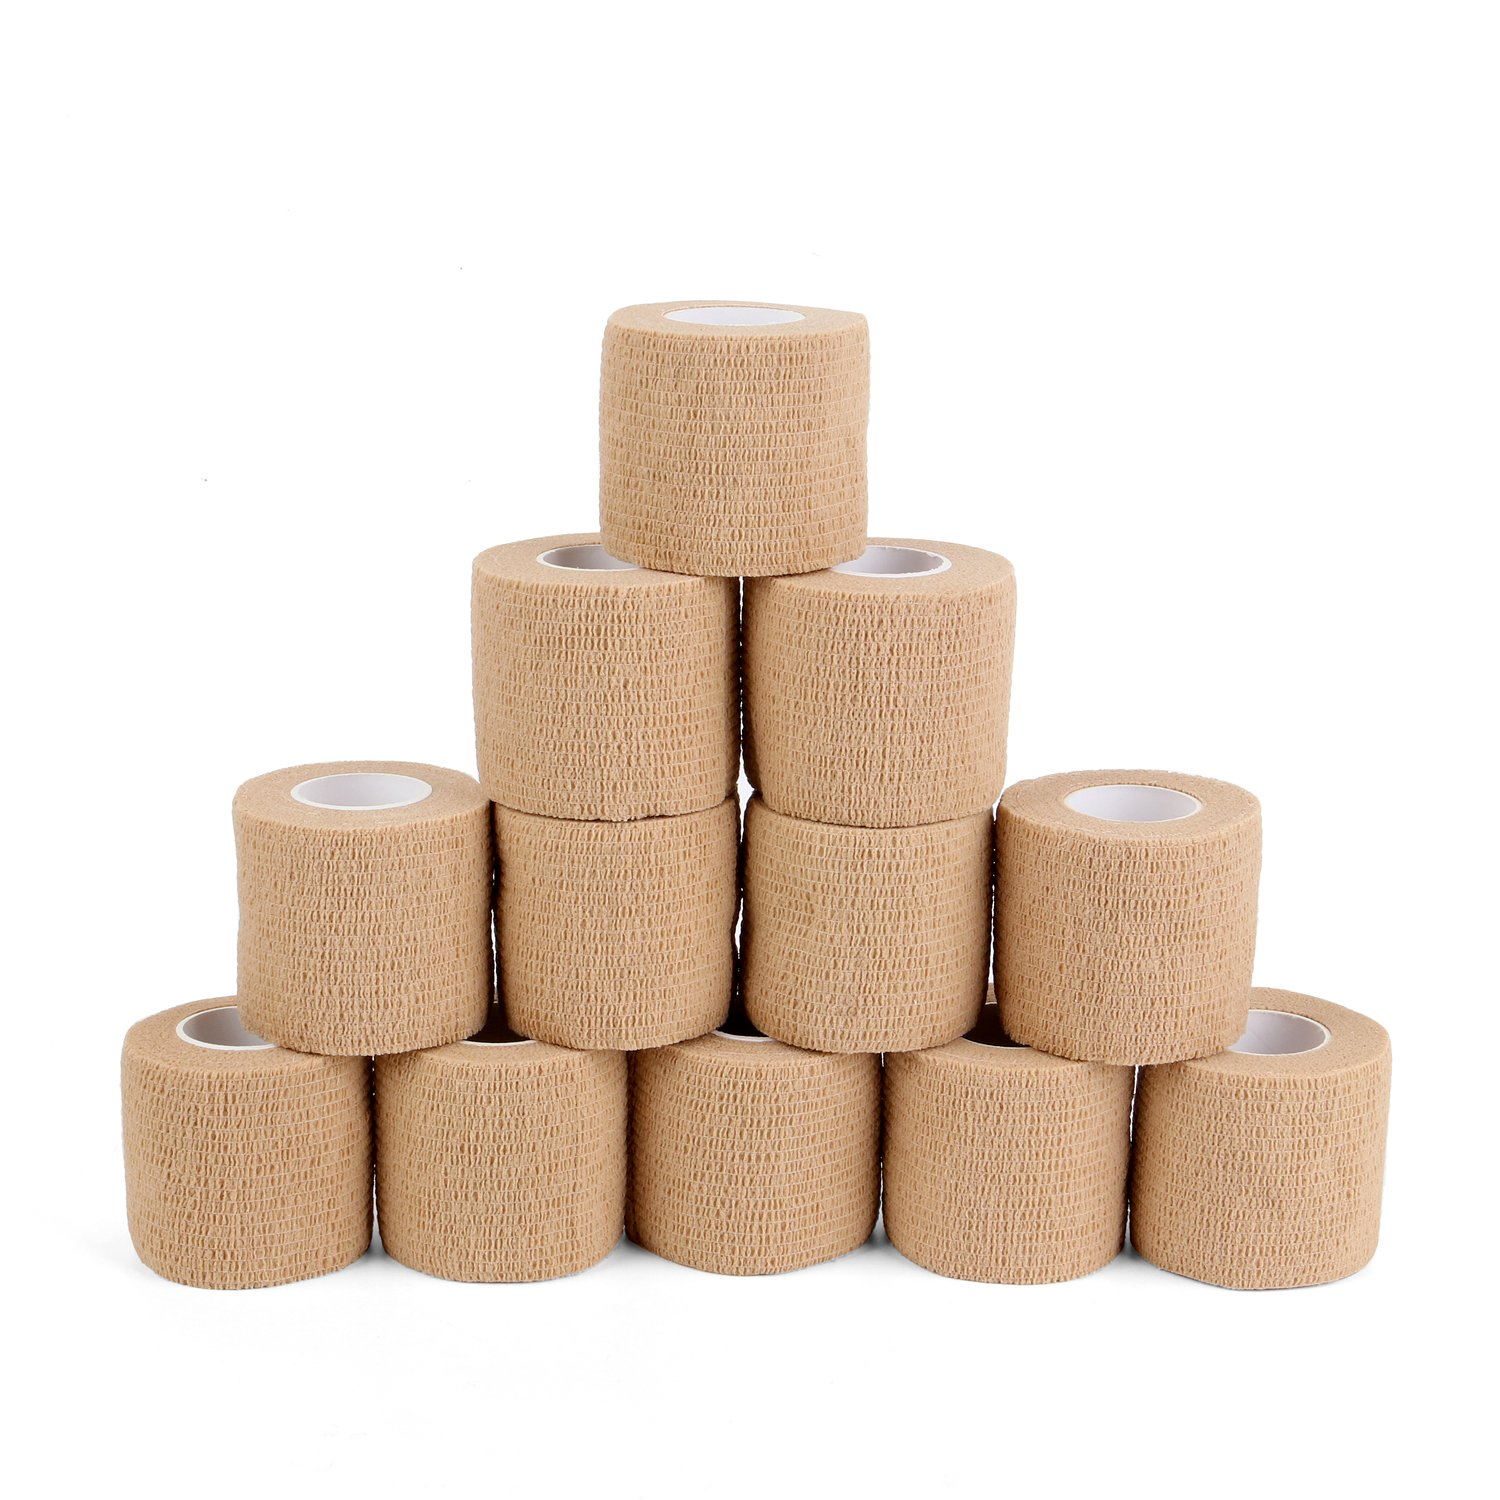 Superbe Self Cohesive Bandage 2''x5 Yards (12 Rolls Pack), Adherent Sports Tape for Sprains & Swelling on Wrist and Ankle, FDA Approved, First Aid Sports Protection Medical Supplies